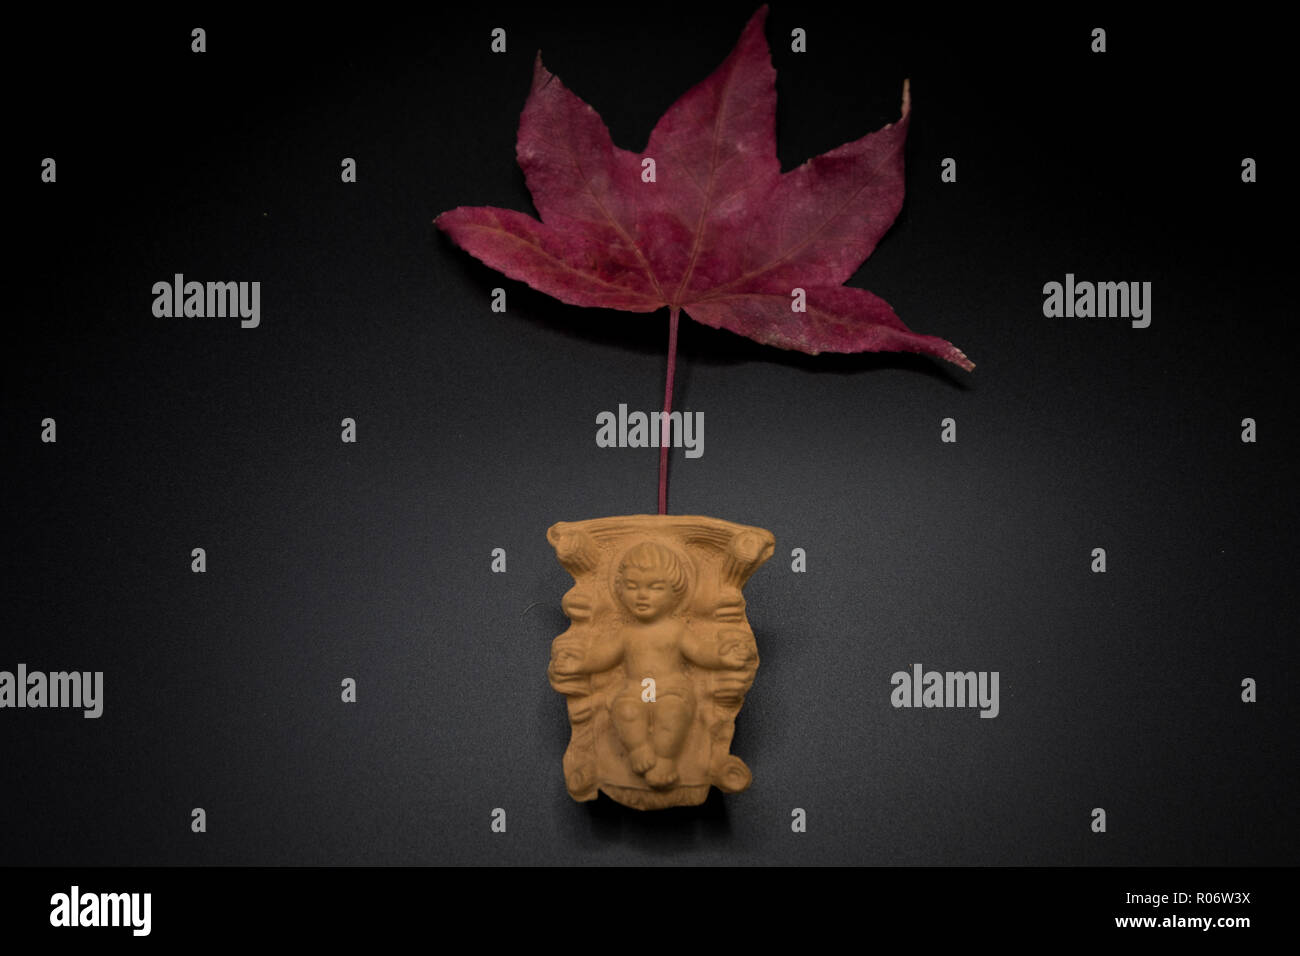 Baby Jesus Christ In The Manger On A Dry Leaf Isolated On Black